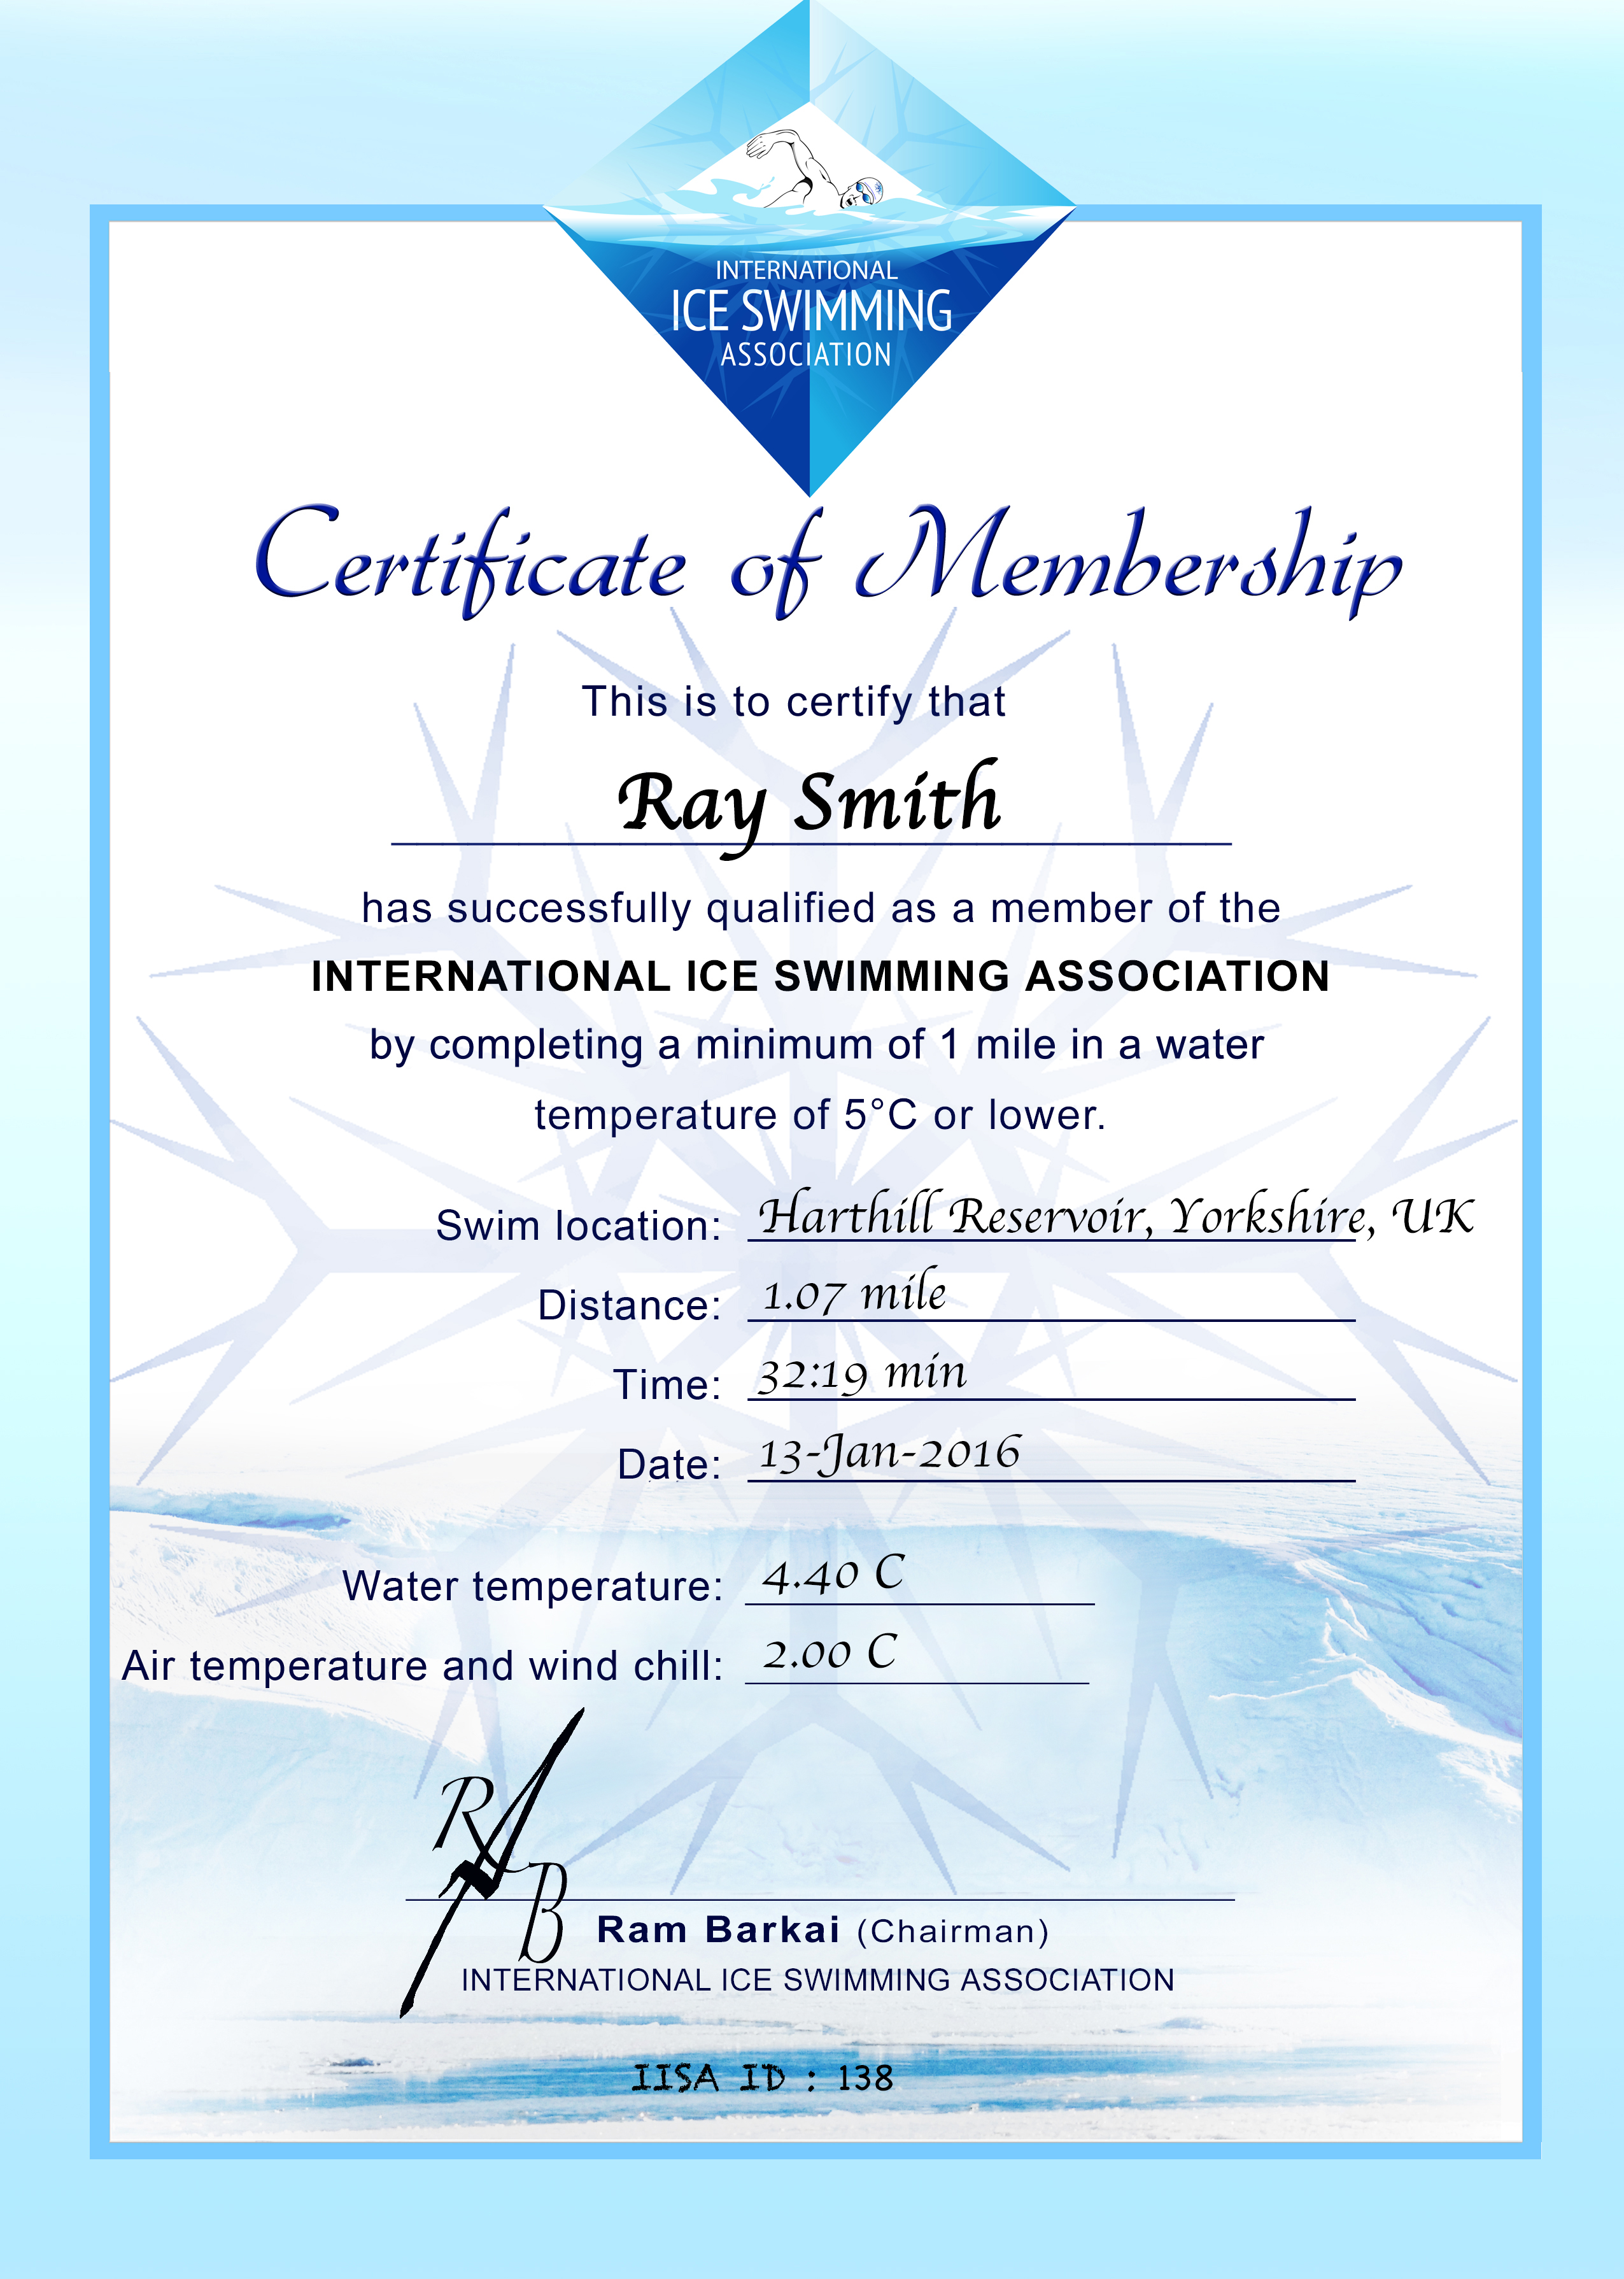 Ice Mile Certificate - Ray Smith